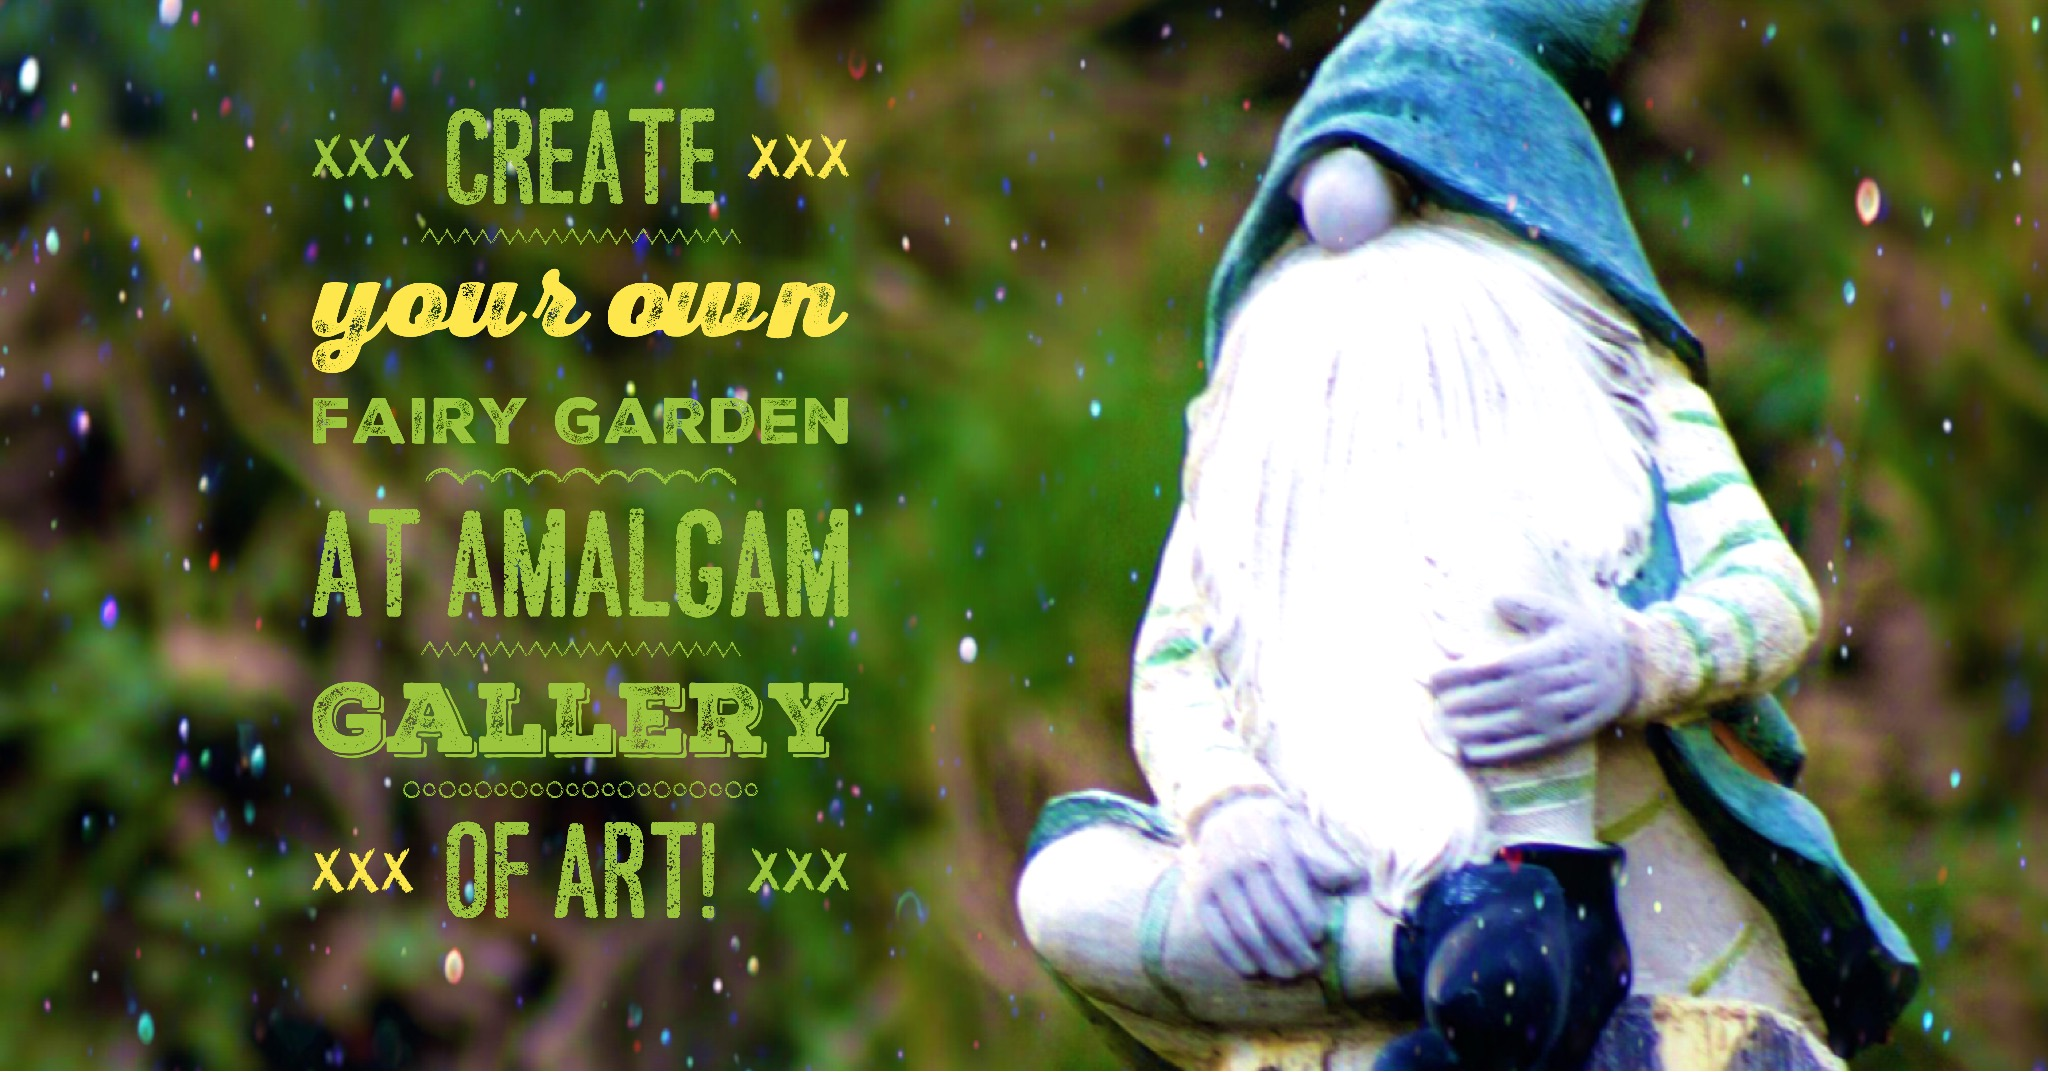 A garden gnome statue advertising Amalgam Gallery's event for creating your own fairy garden.